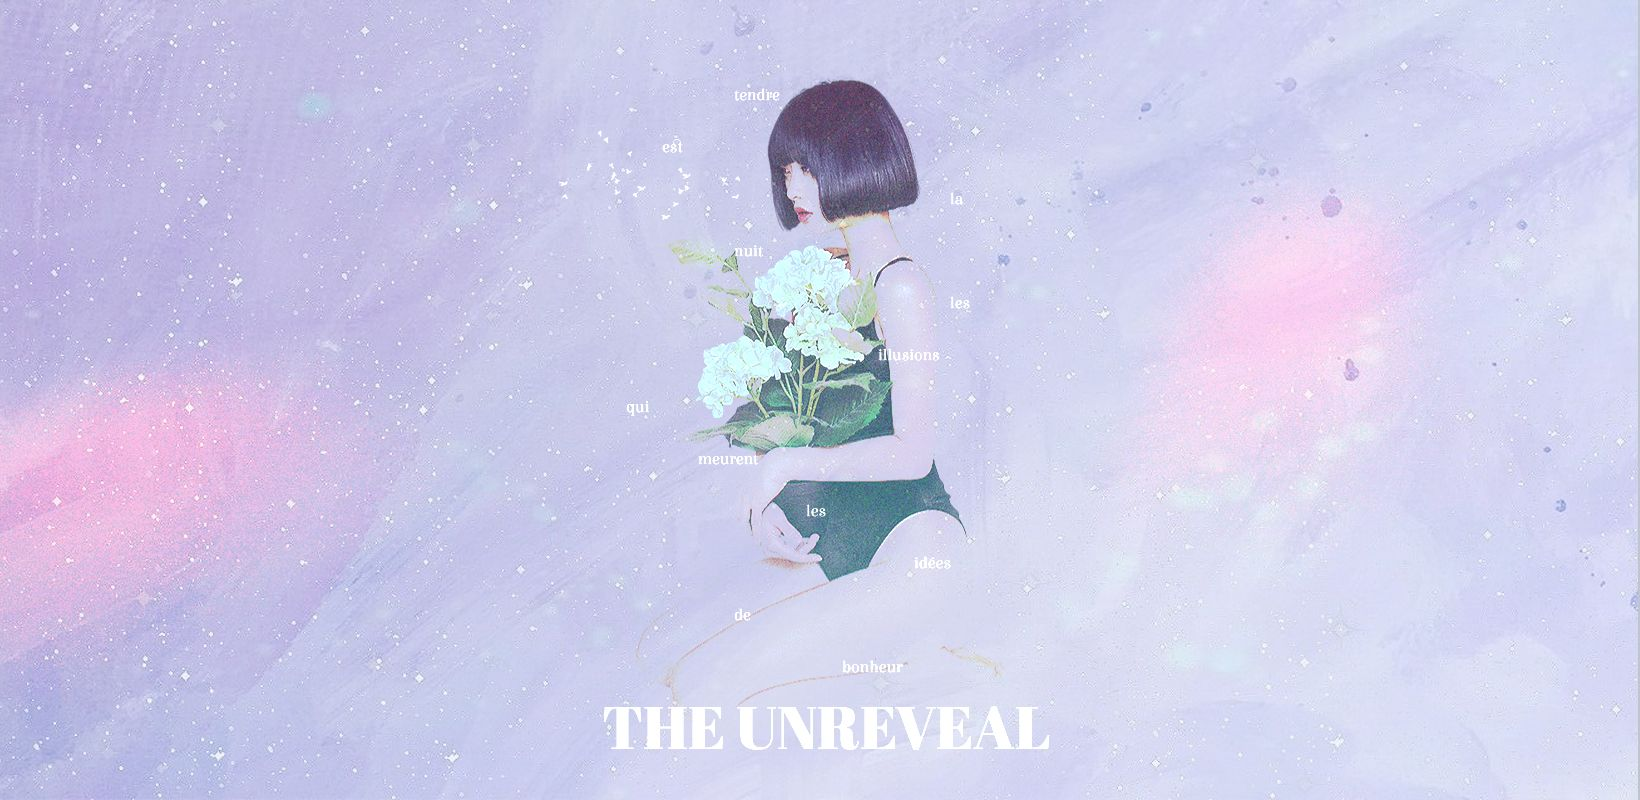 The unreveal